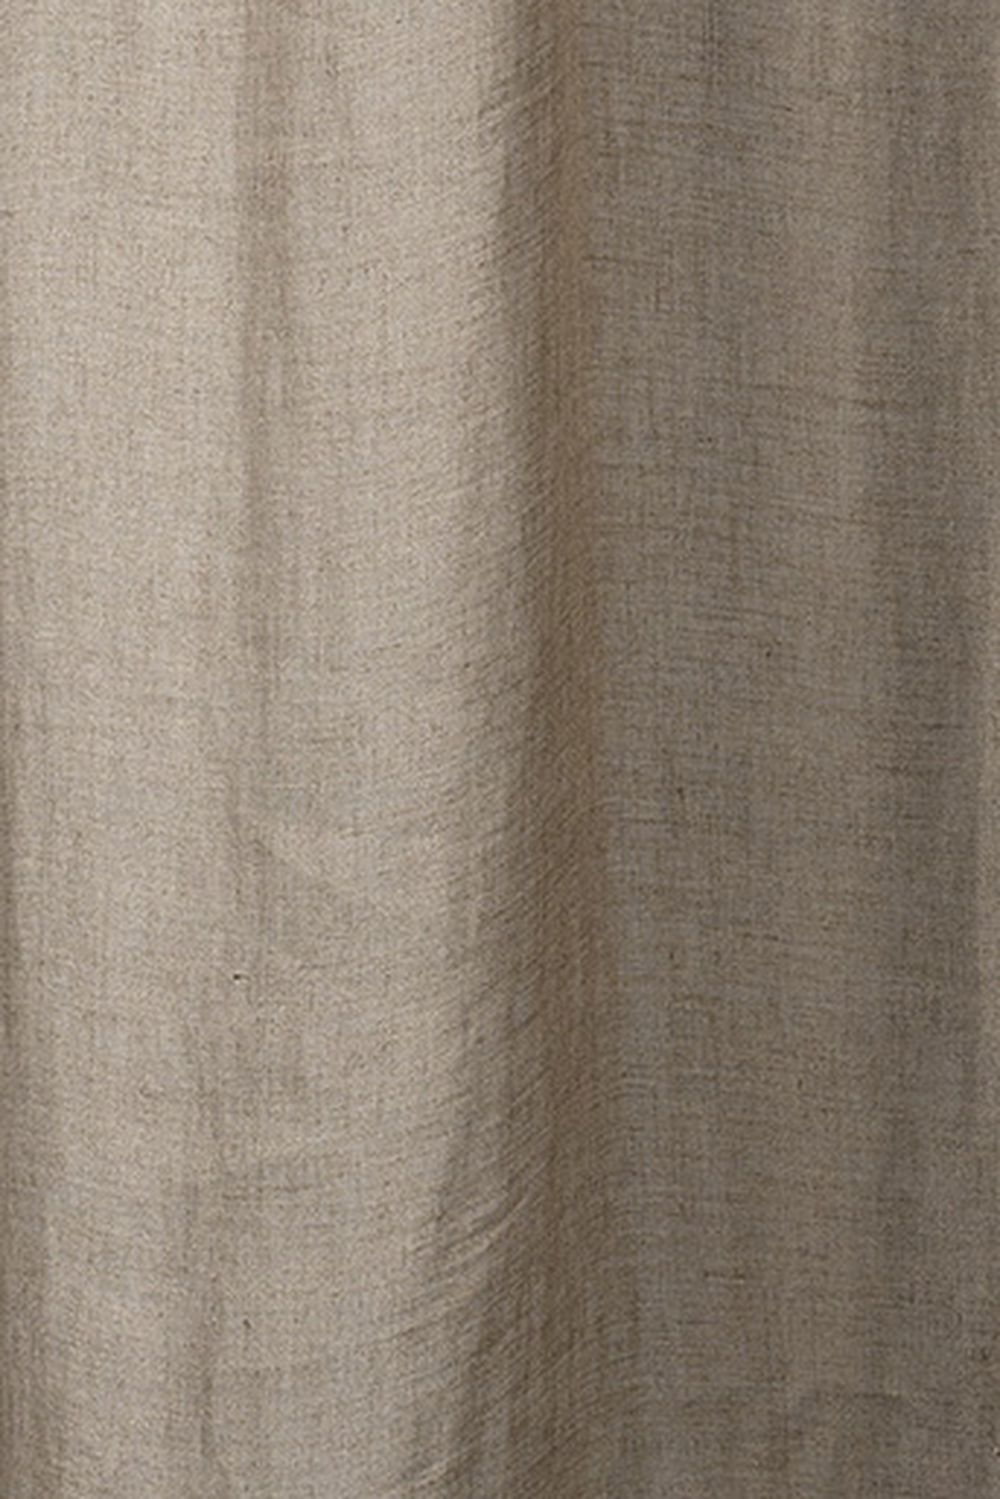 Photo of the fabric Laconia Air Hemp swatch by James Dunlop. Use for Sheer Curtains. Style of Plain, Sheer